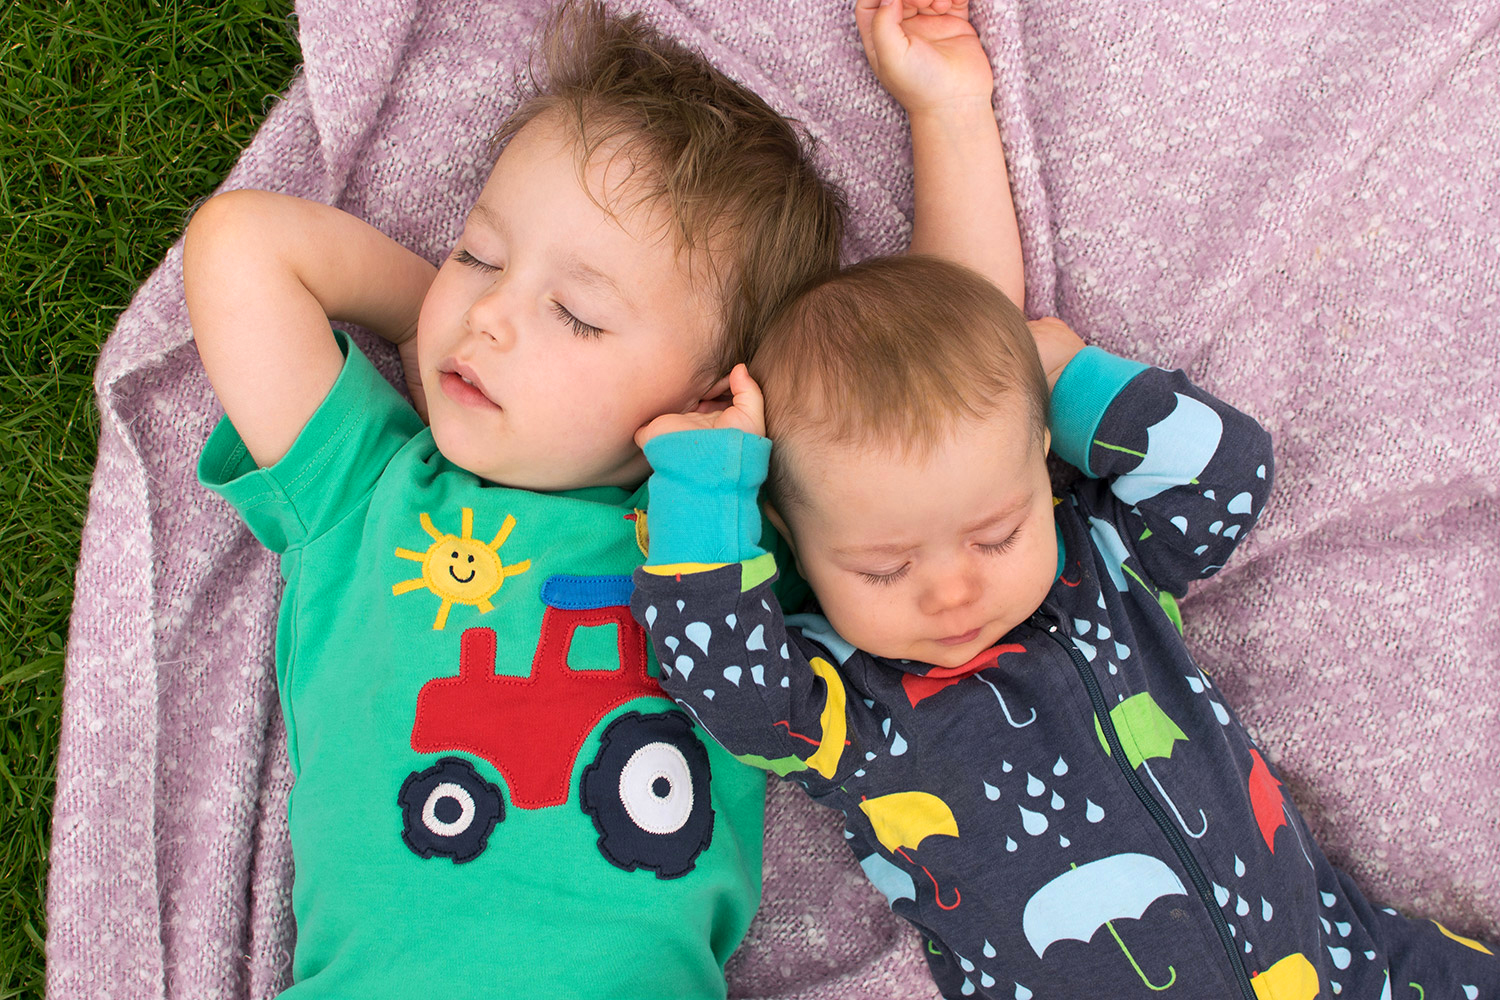 Siblings | July 2017 - 3 year old and 10 month old baby brothers and siblings wearing Frugi green tractor t-shirt and Duns Sweden umbrella print onesie sleeping on a blanket at a picnic outside on a Summer's day